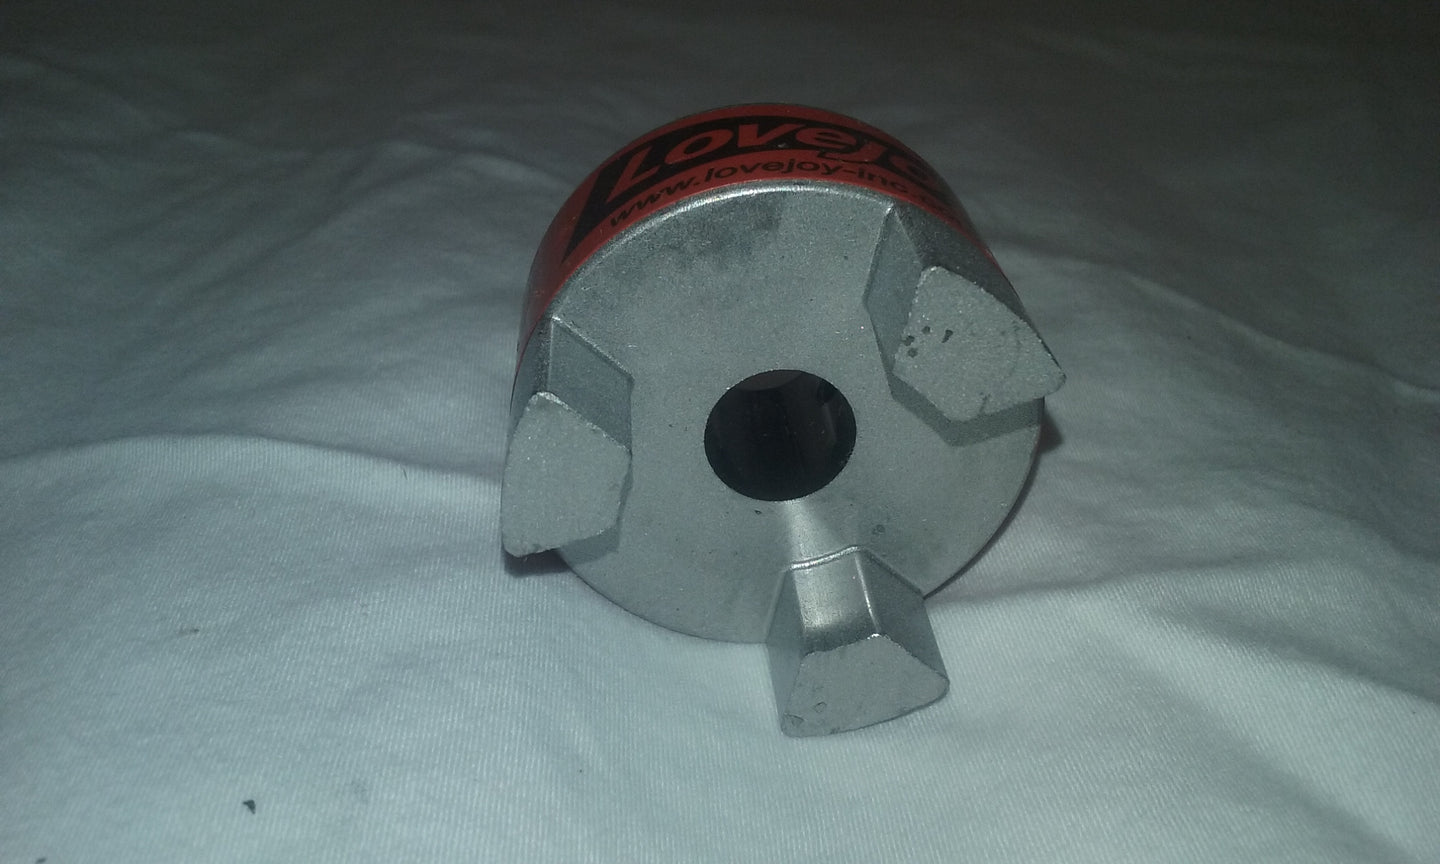 L075 series Lovejoy shaft coupler components